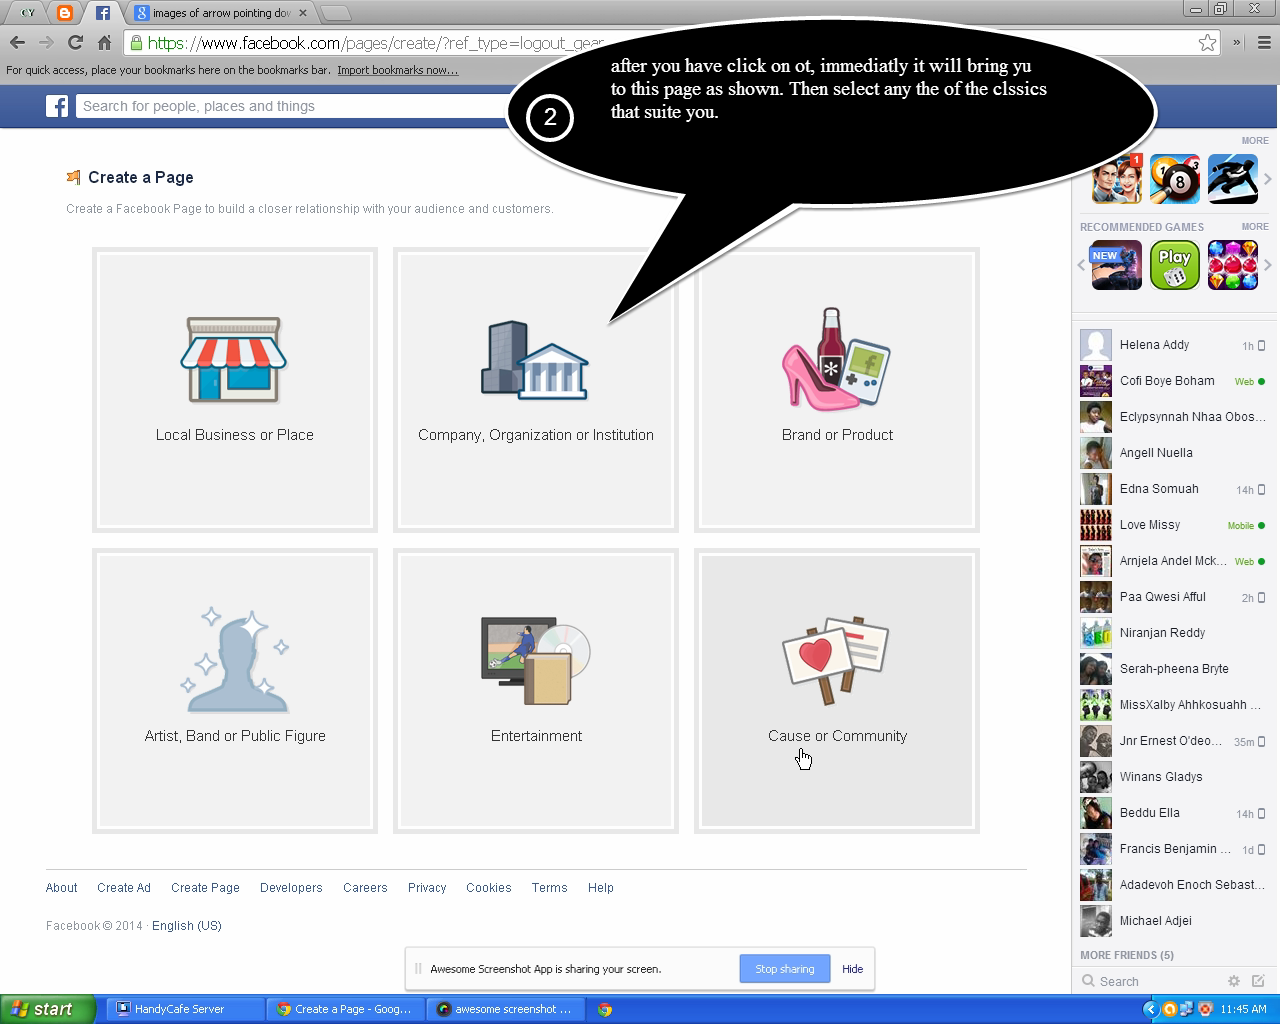 how to decide what page to create on facebook